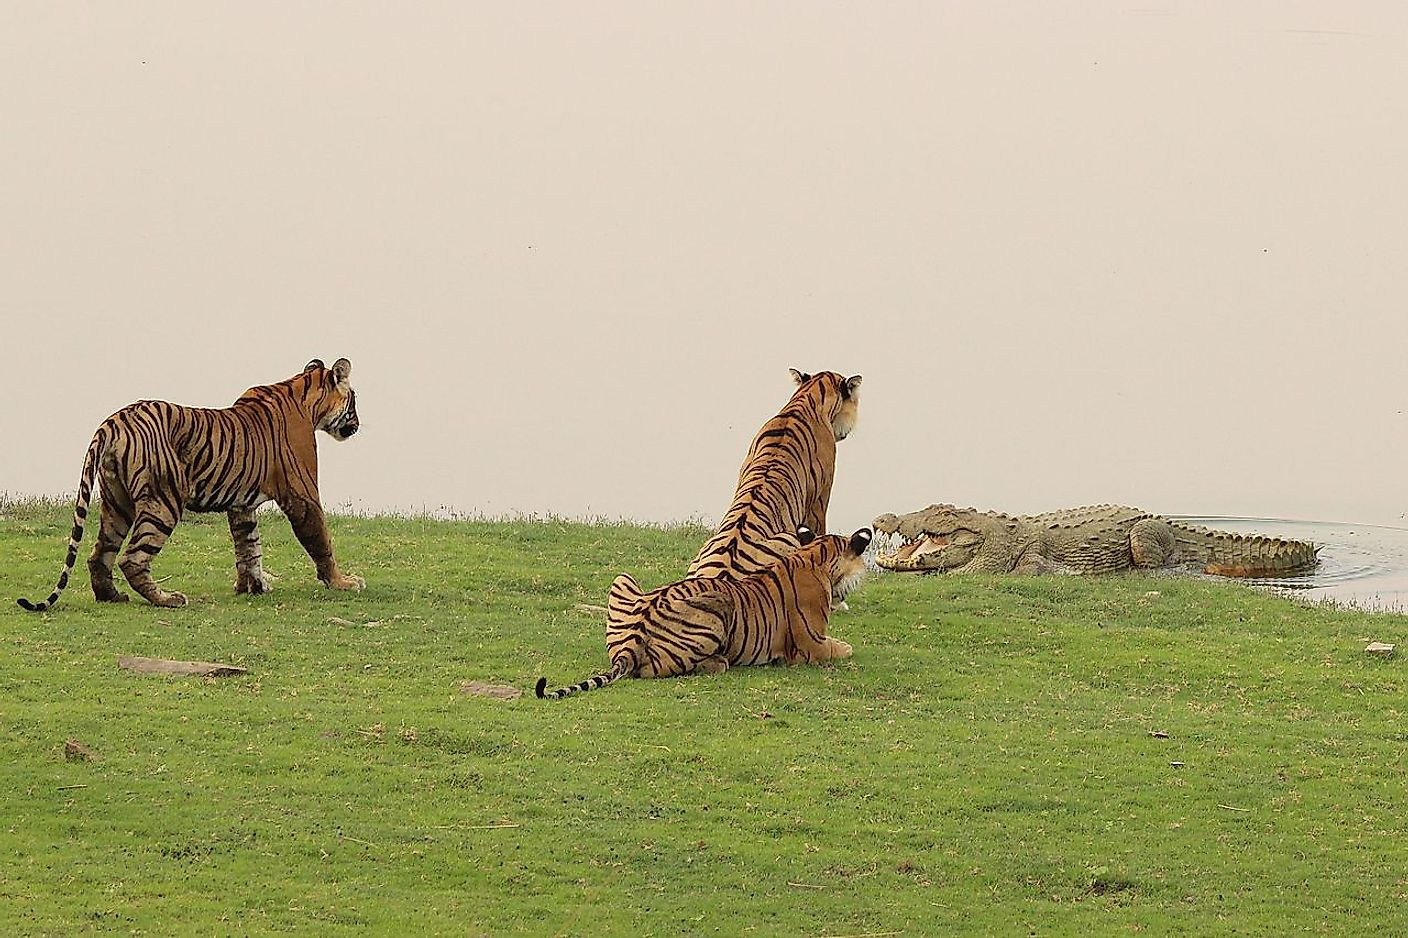 The image shows the confrontation between a crocodile and the fearless tigress T-19 of Ranthambore tiger reserve facing off the croc with two of her cubs on her flanks. Image credit: Vedang Vadalkar/Wikimedia.org